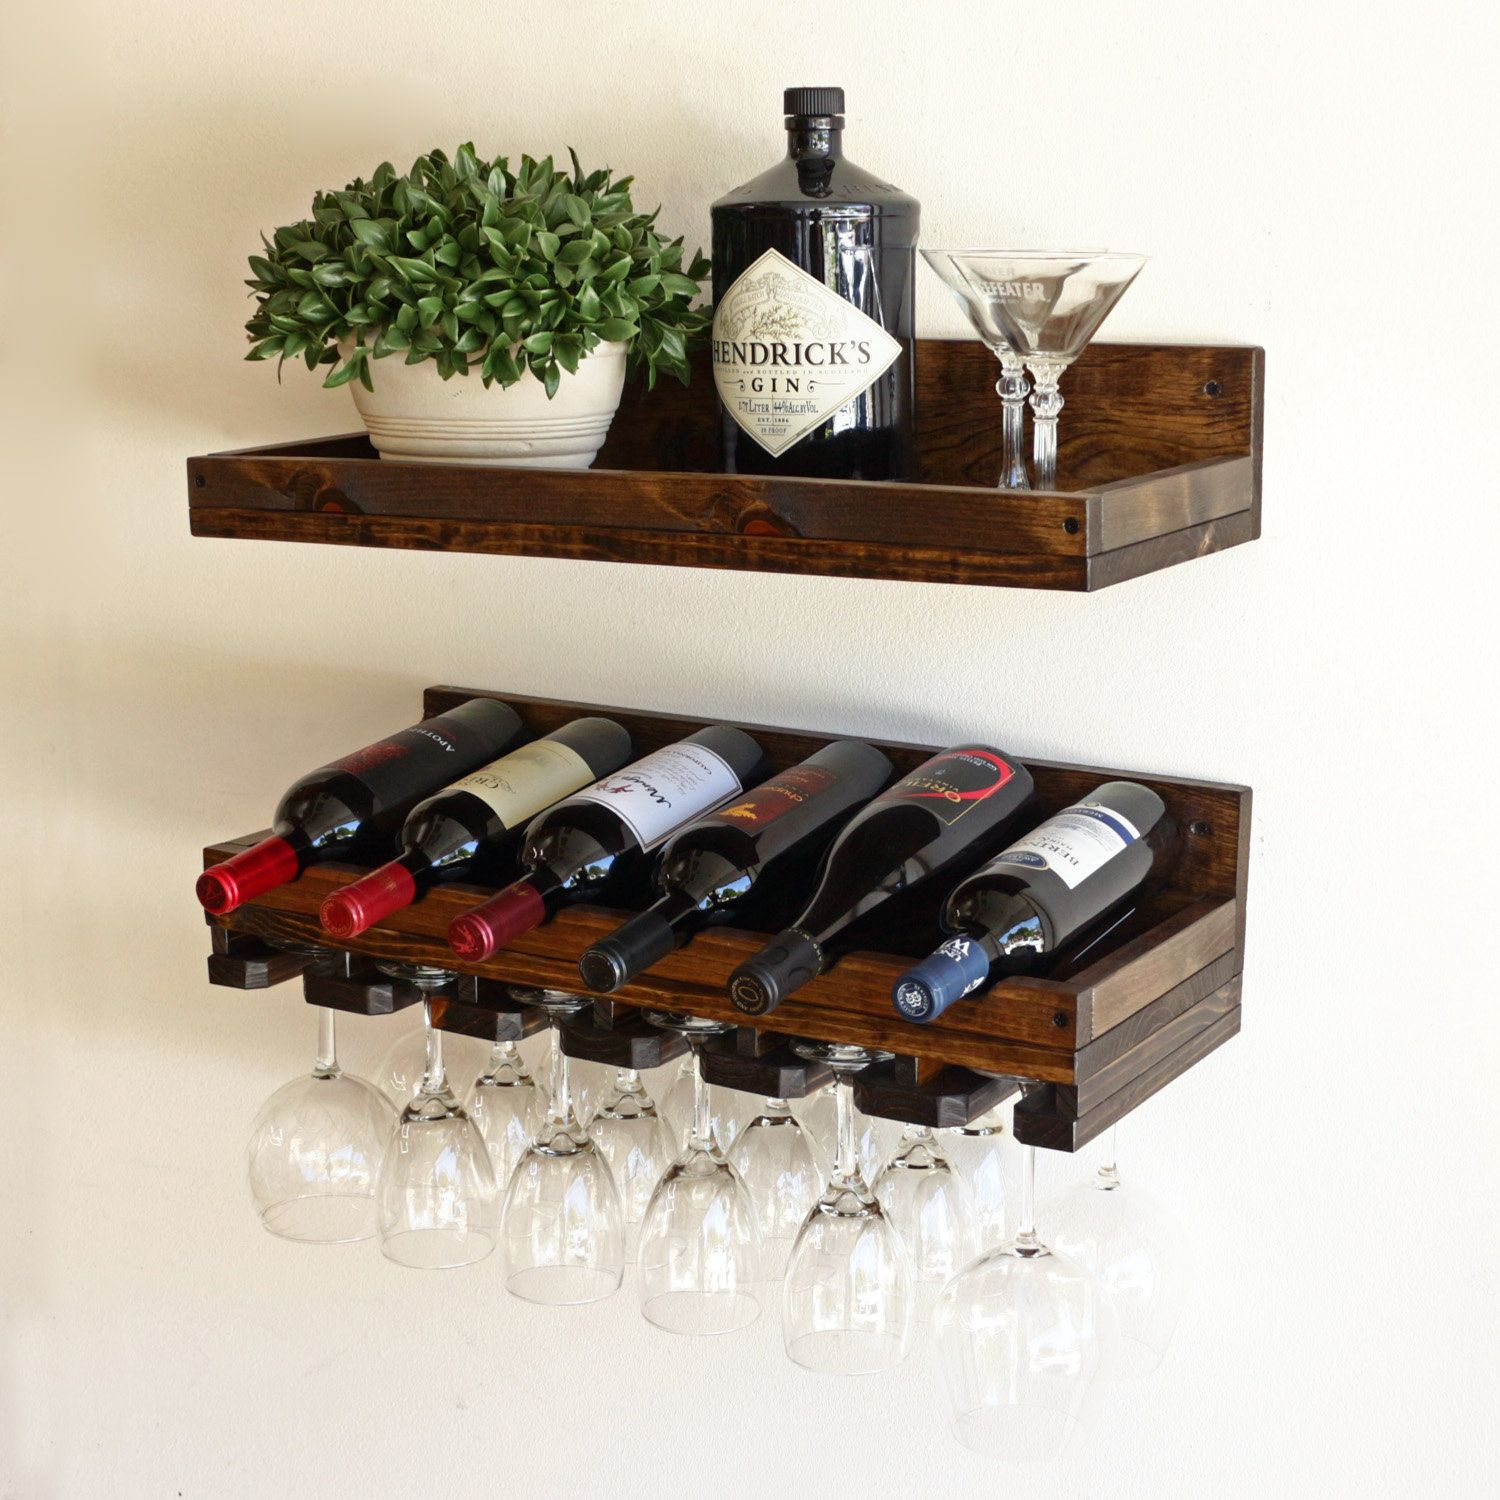 6 Bottle Wall Mounted Wine Rack With Hanging Stemware Glass Holder